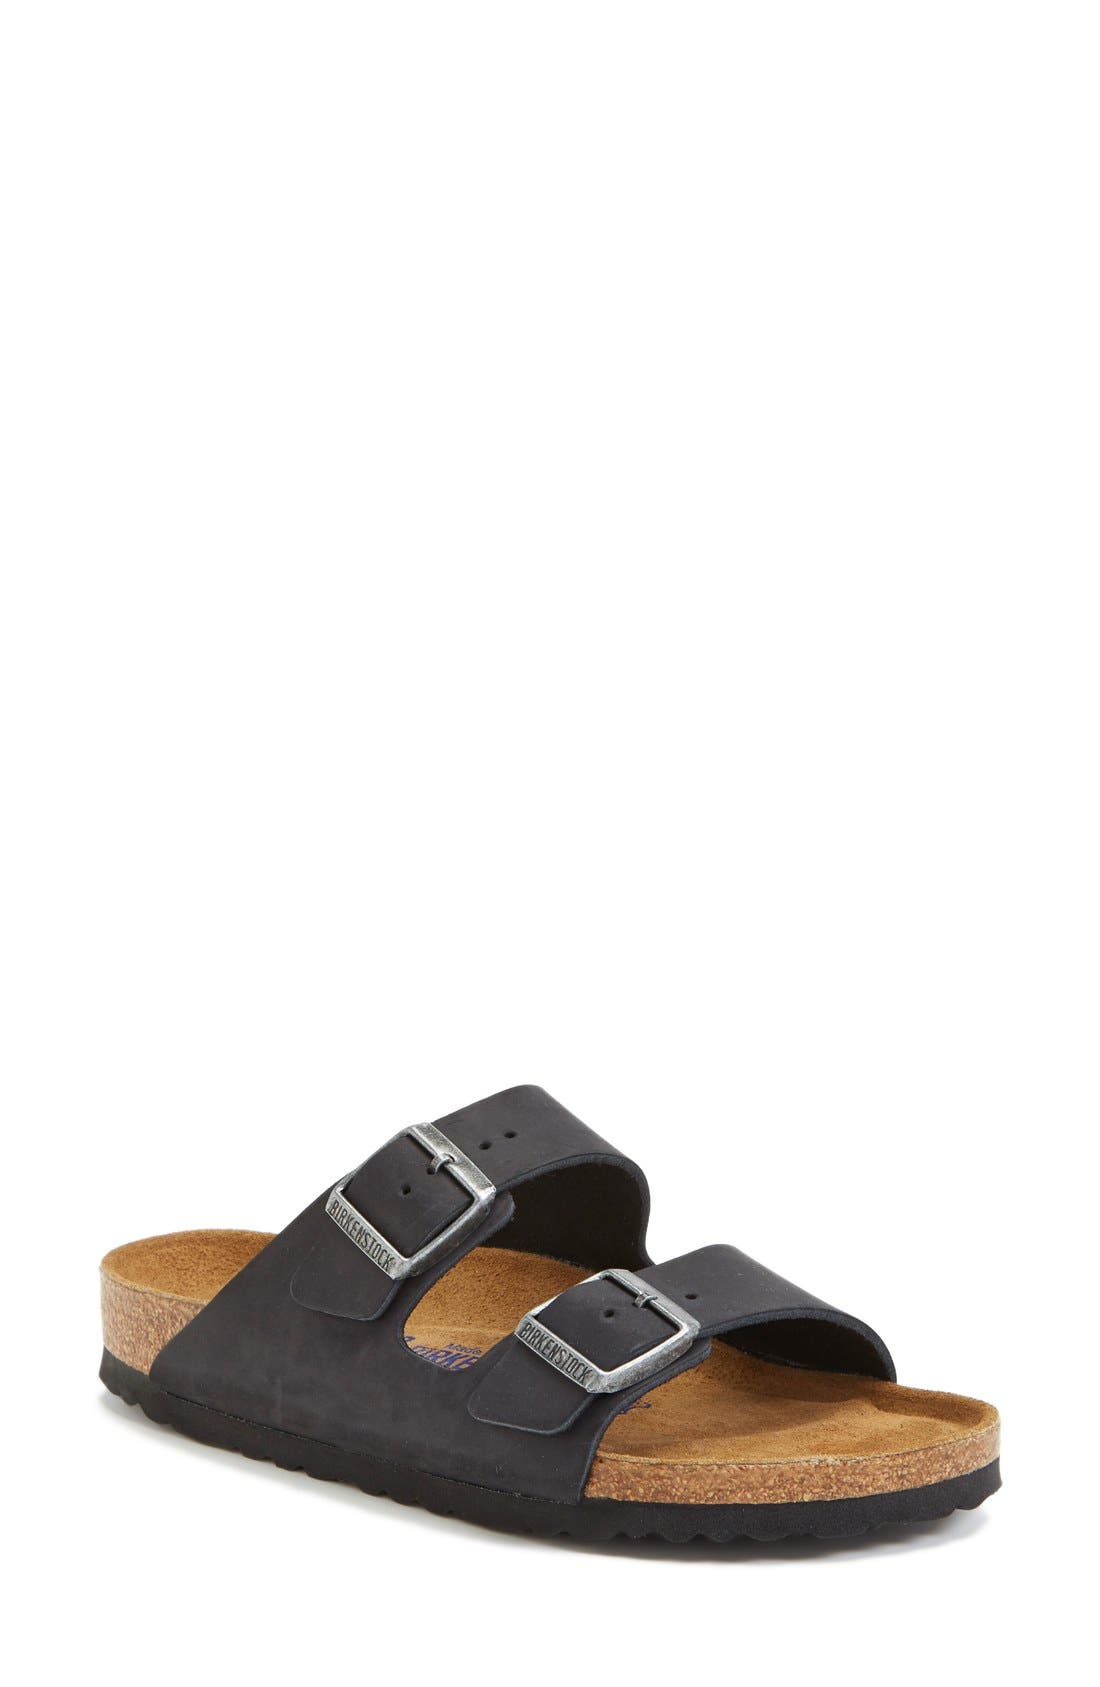 Alternate Image 1 Selected - Birkenstock 'Arizona' Soft Footbed Sandal (Women)